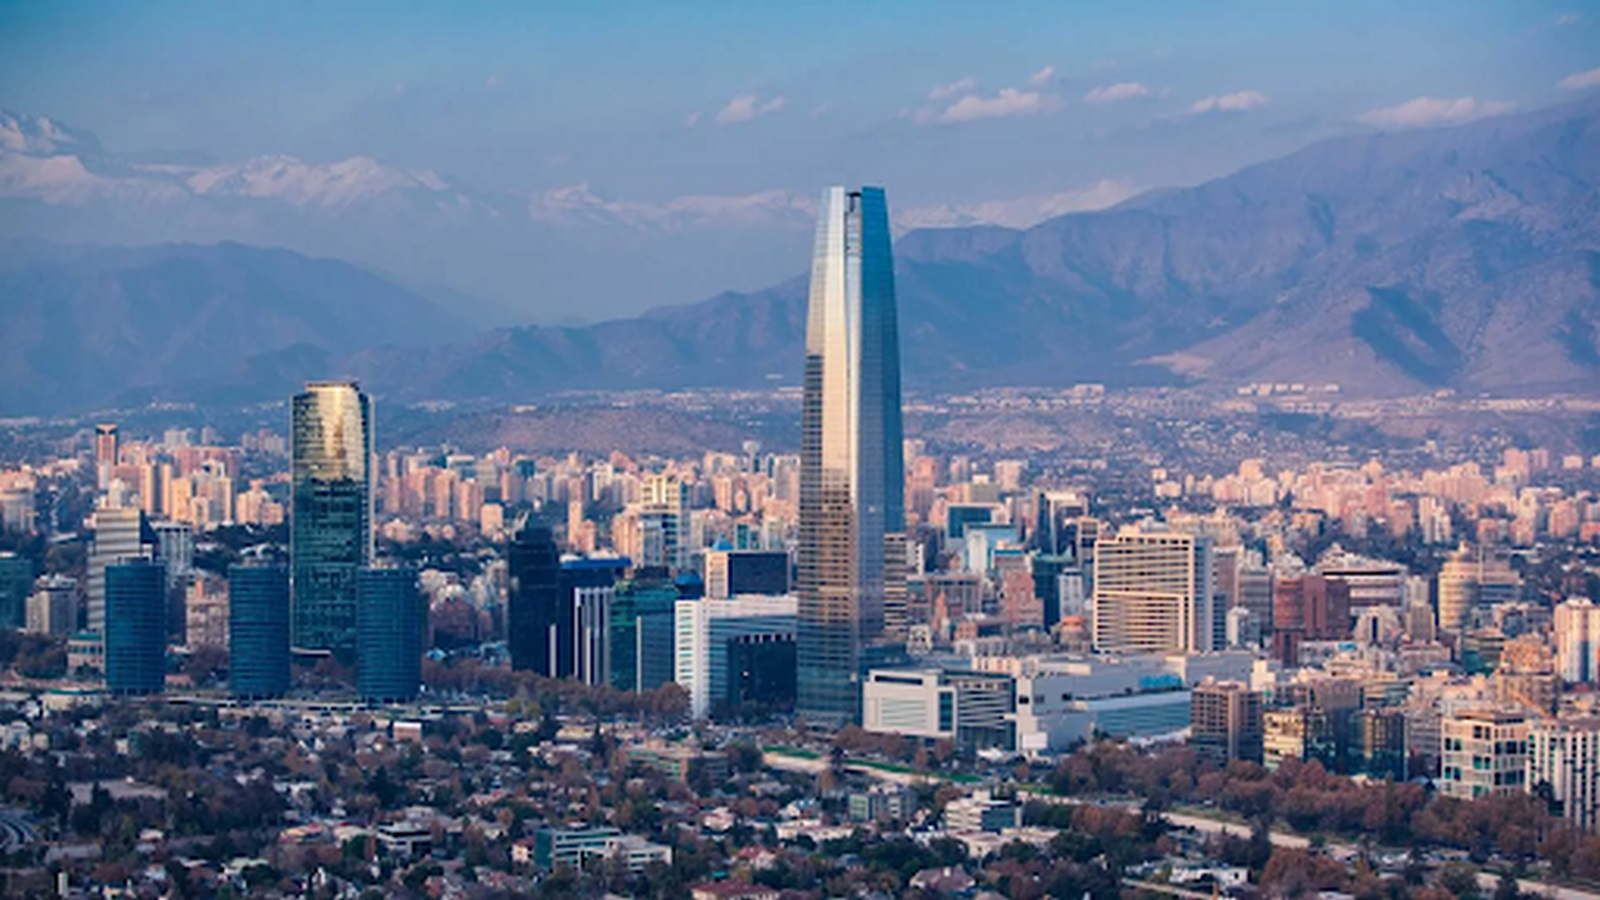 10 Things to remember when designing in Chile - Sheet8